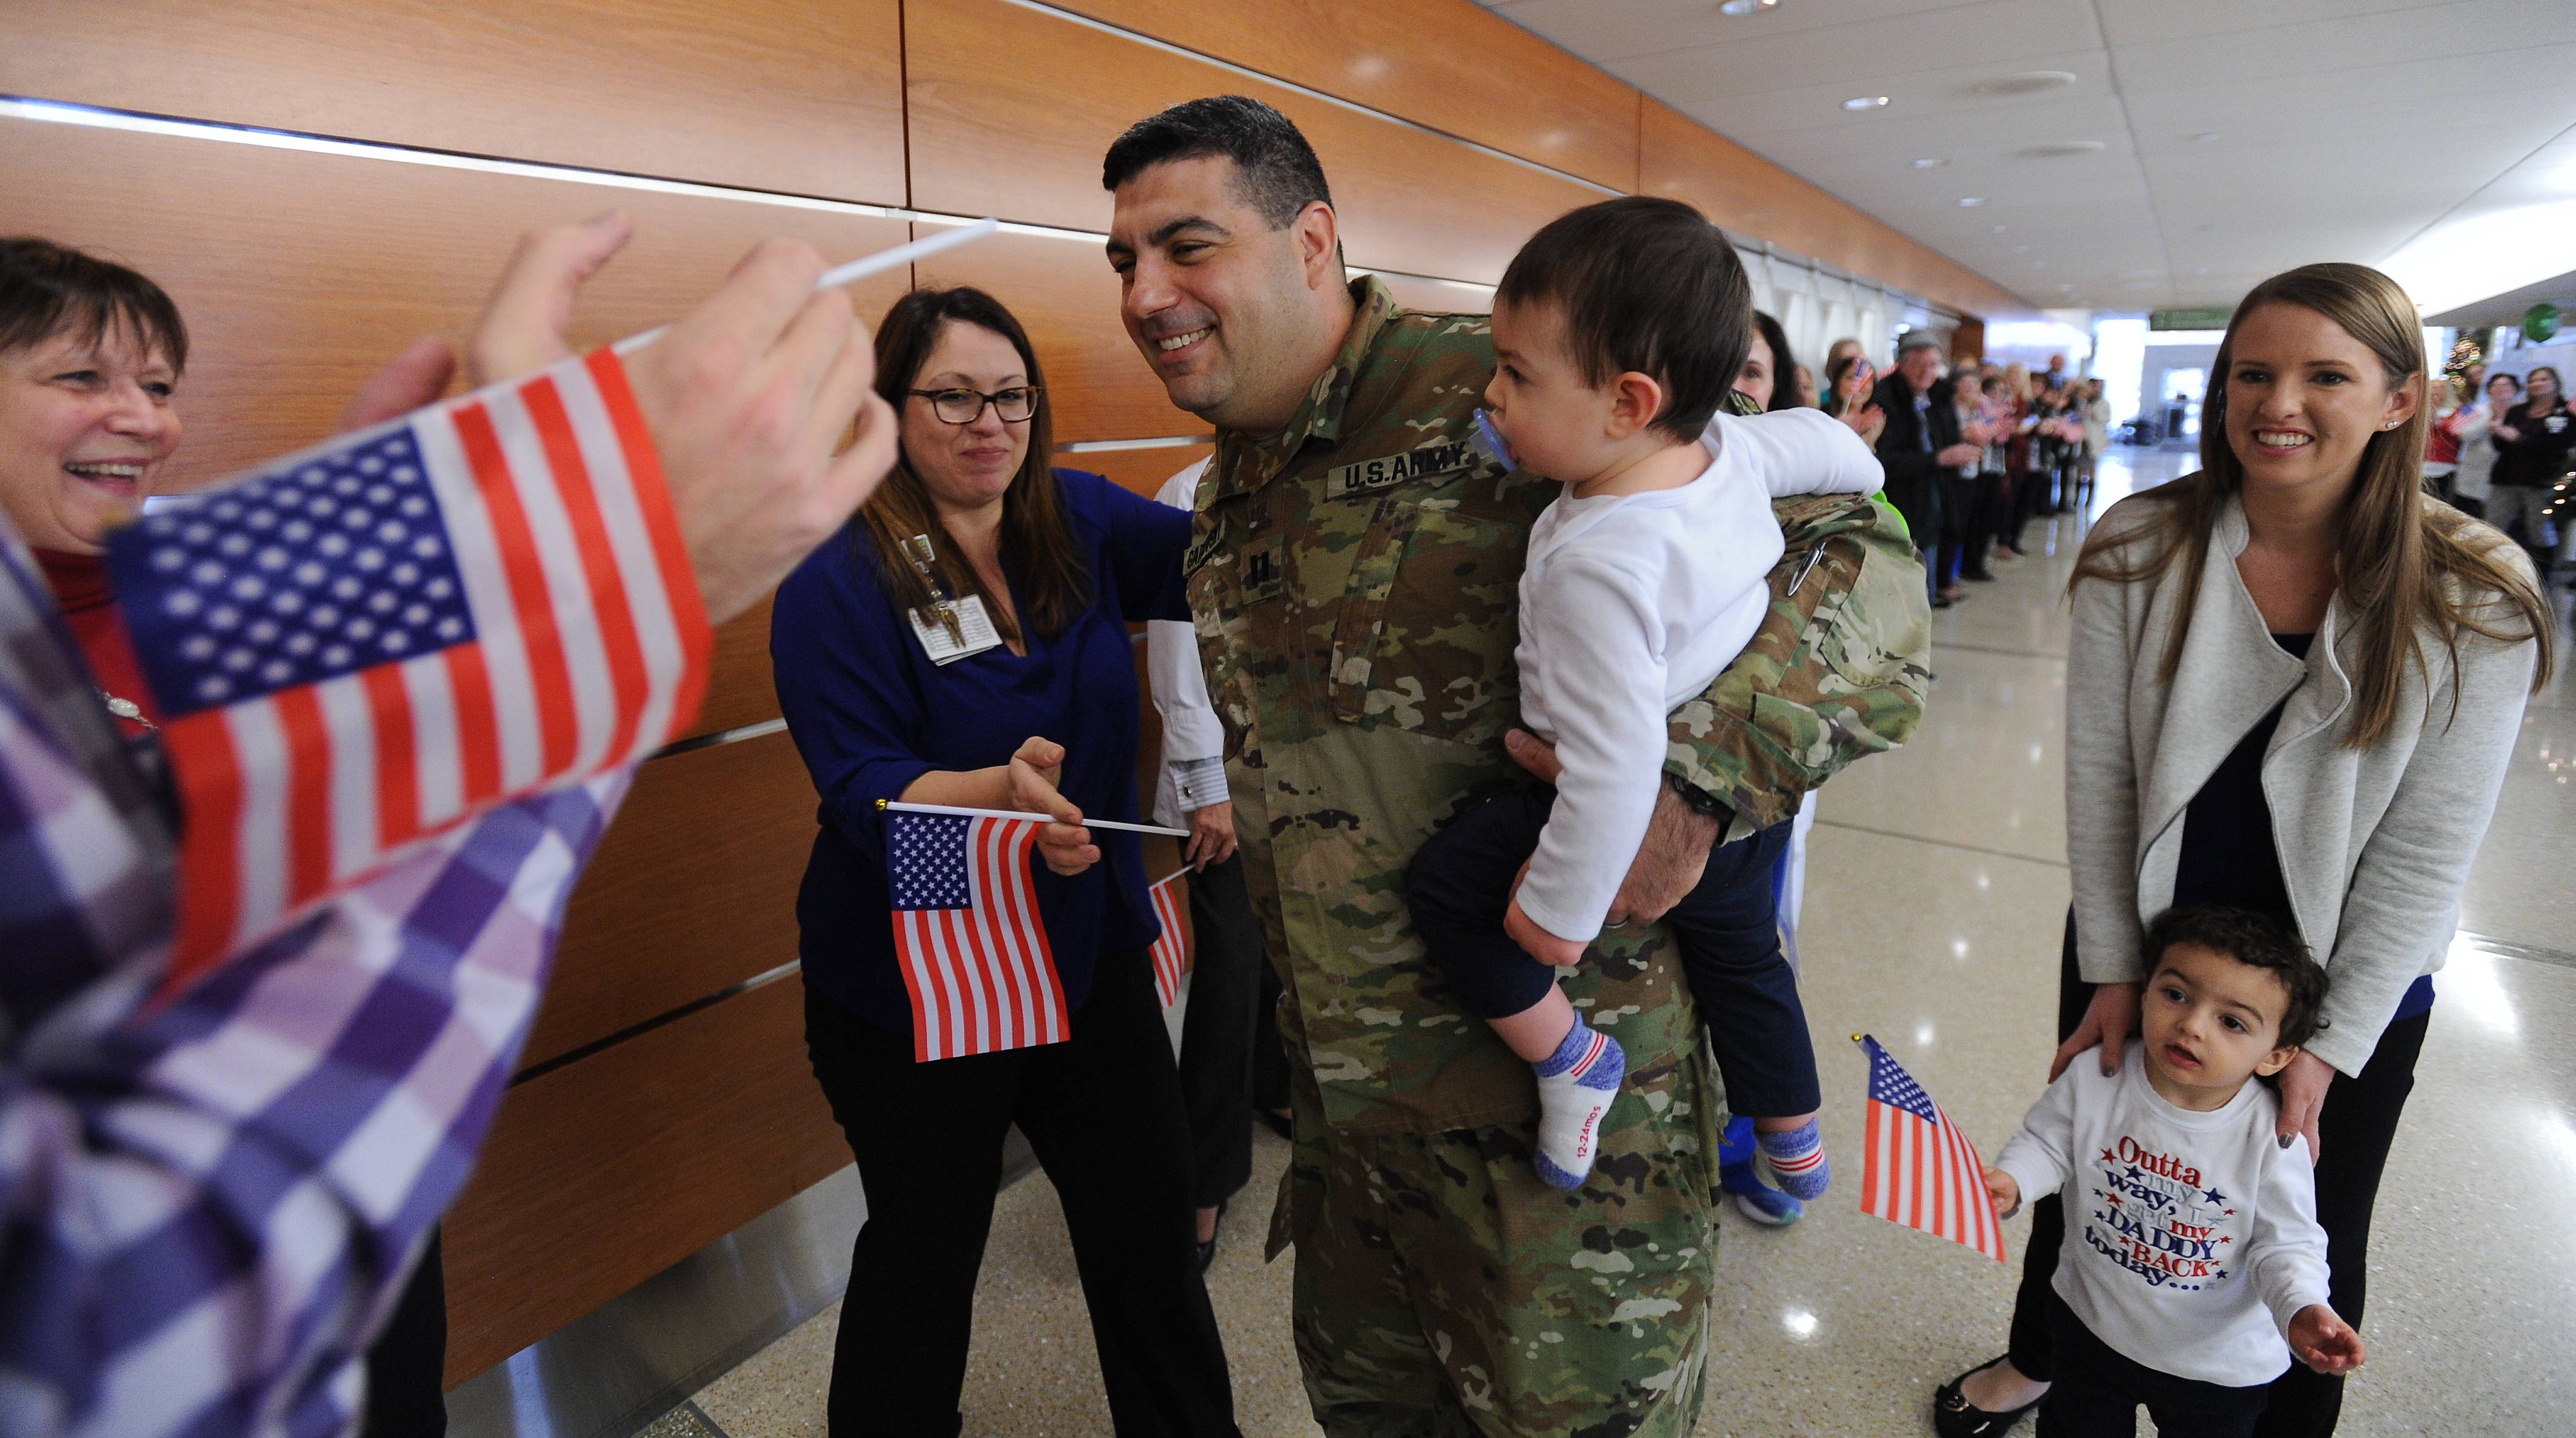 Dr. Jonathan Garlovsky returned to Northwest Community Hospital in Arlington Heights on Monday, joined by his wife, Trisha, and sons Mason, 2, and Nate, 1. The U.S. Army Reserve captain spent three months serving in a military hospital at Camp Arifjan in Kuwait.